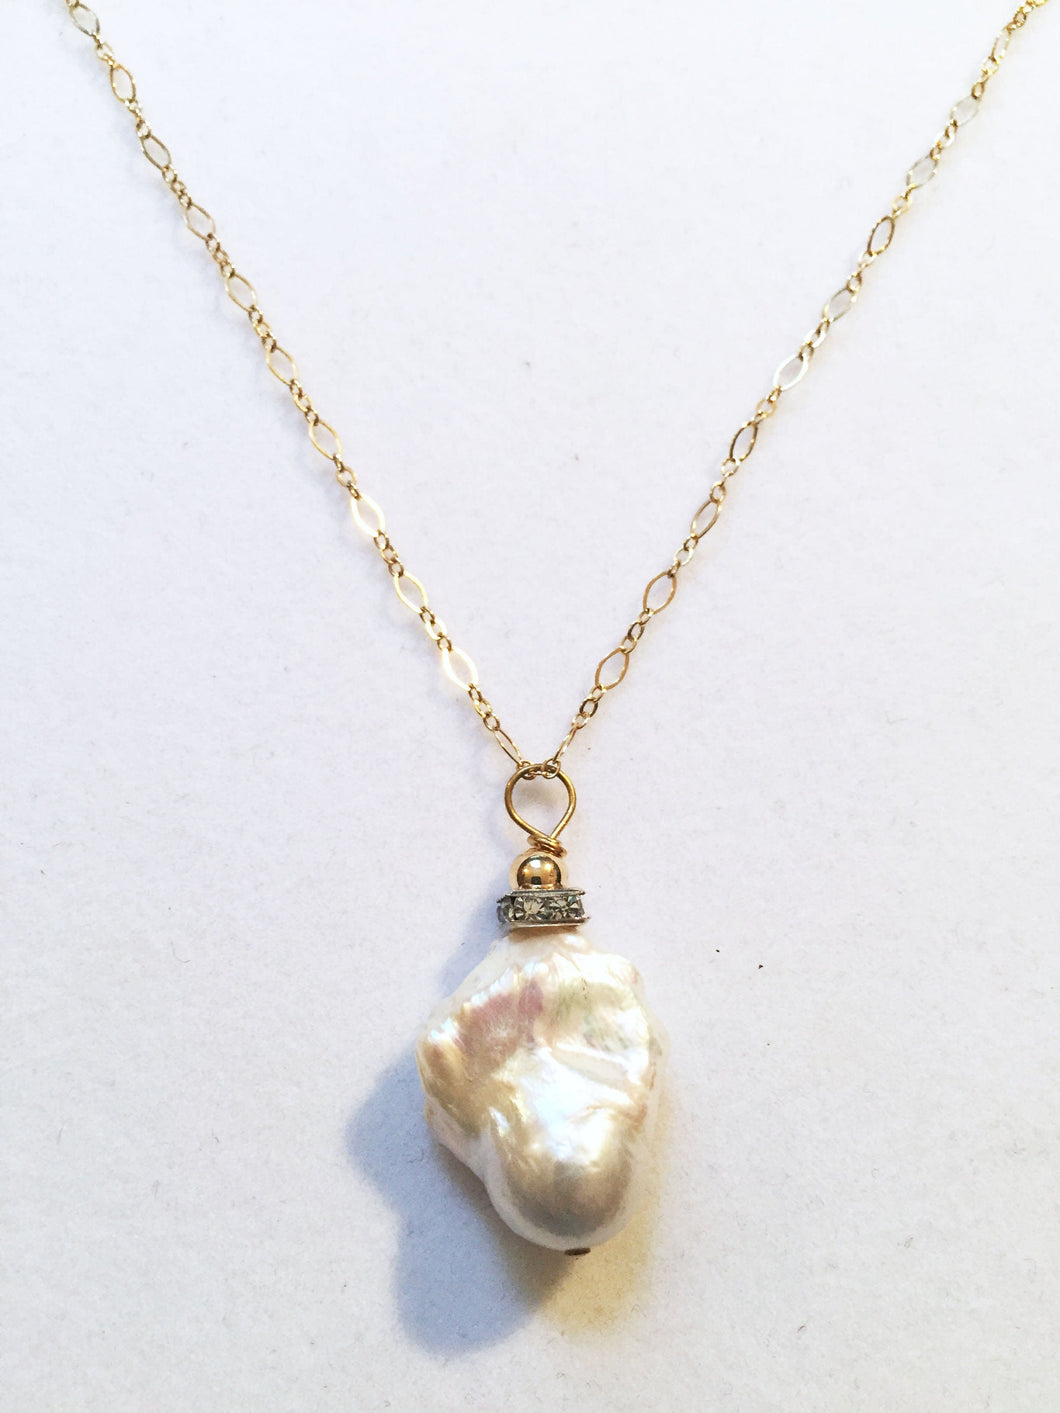 Baroque Pearl Necklace With Gold Chain